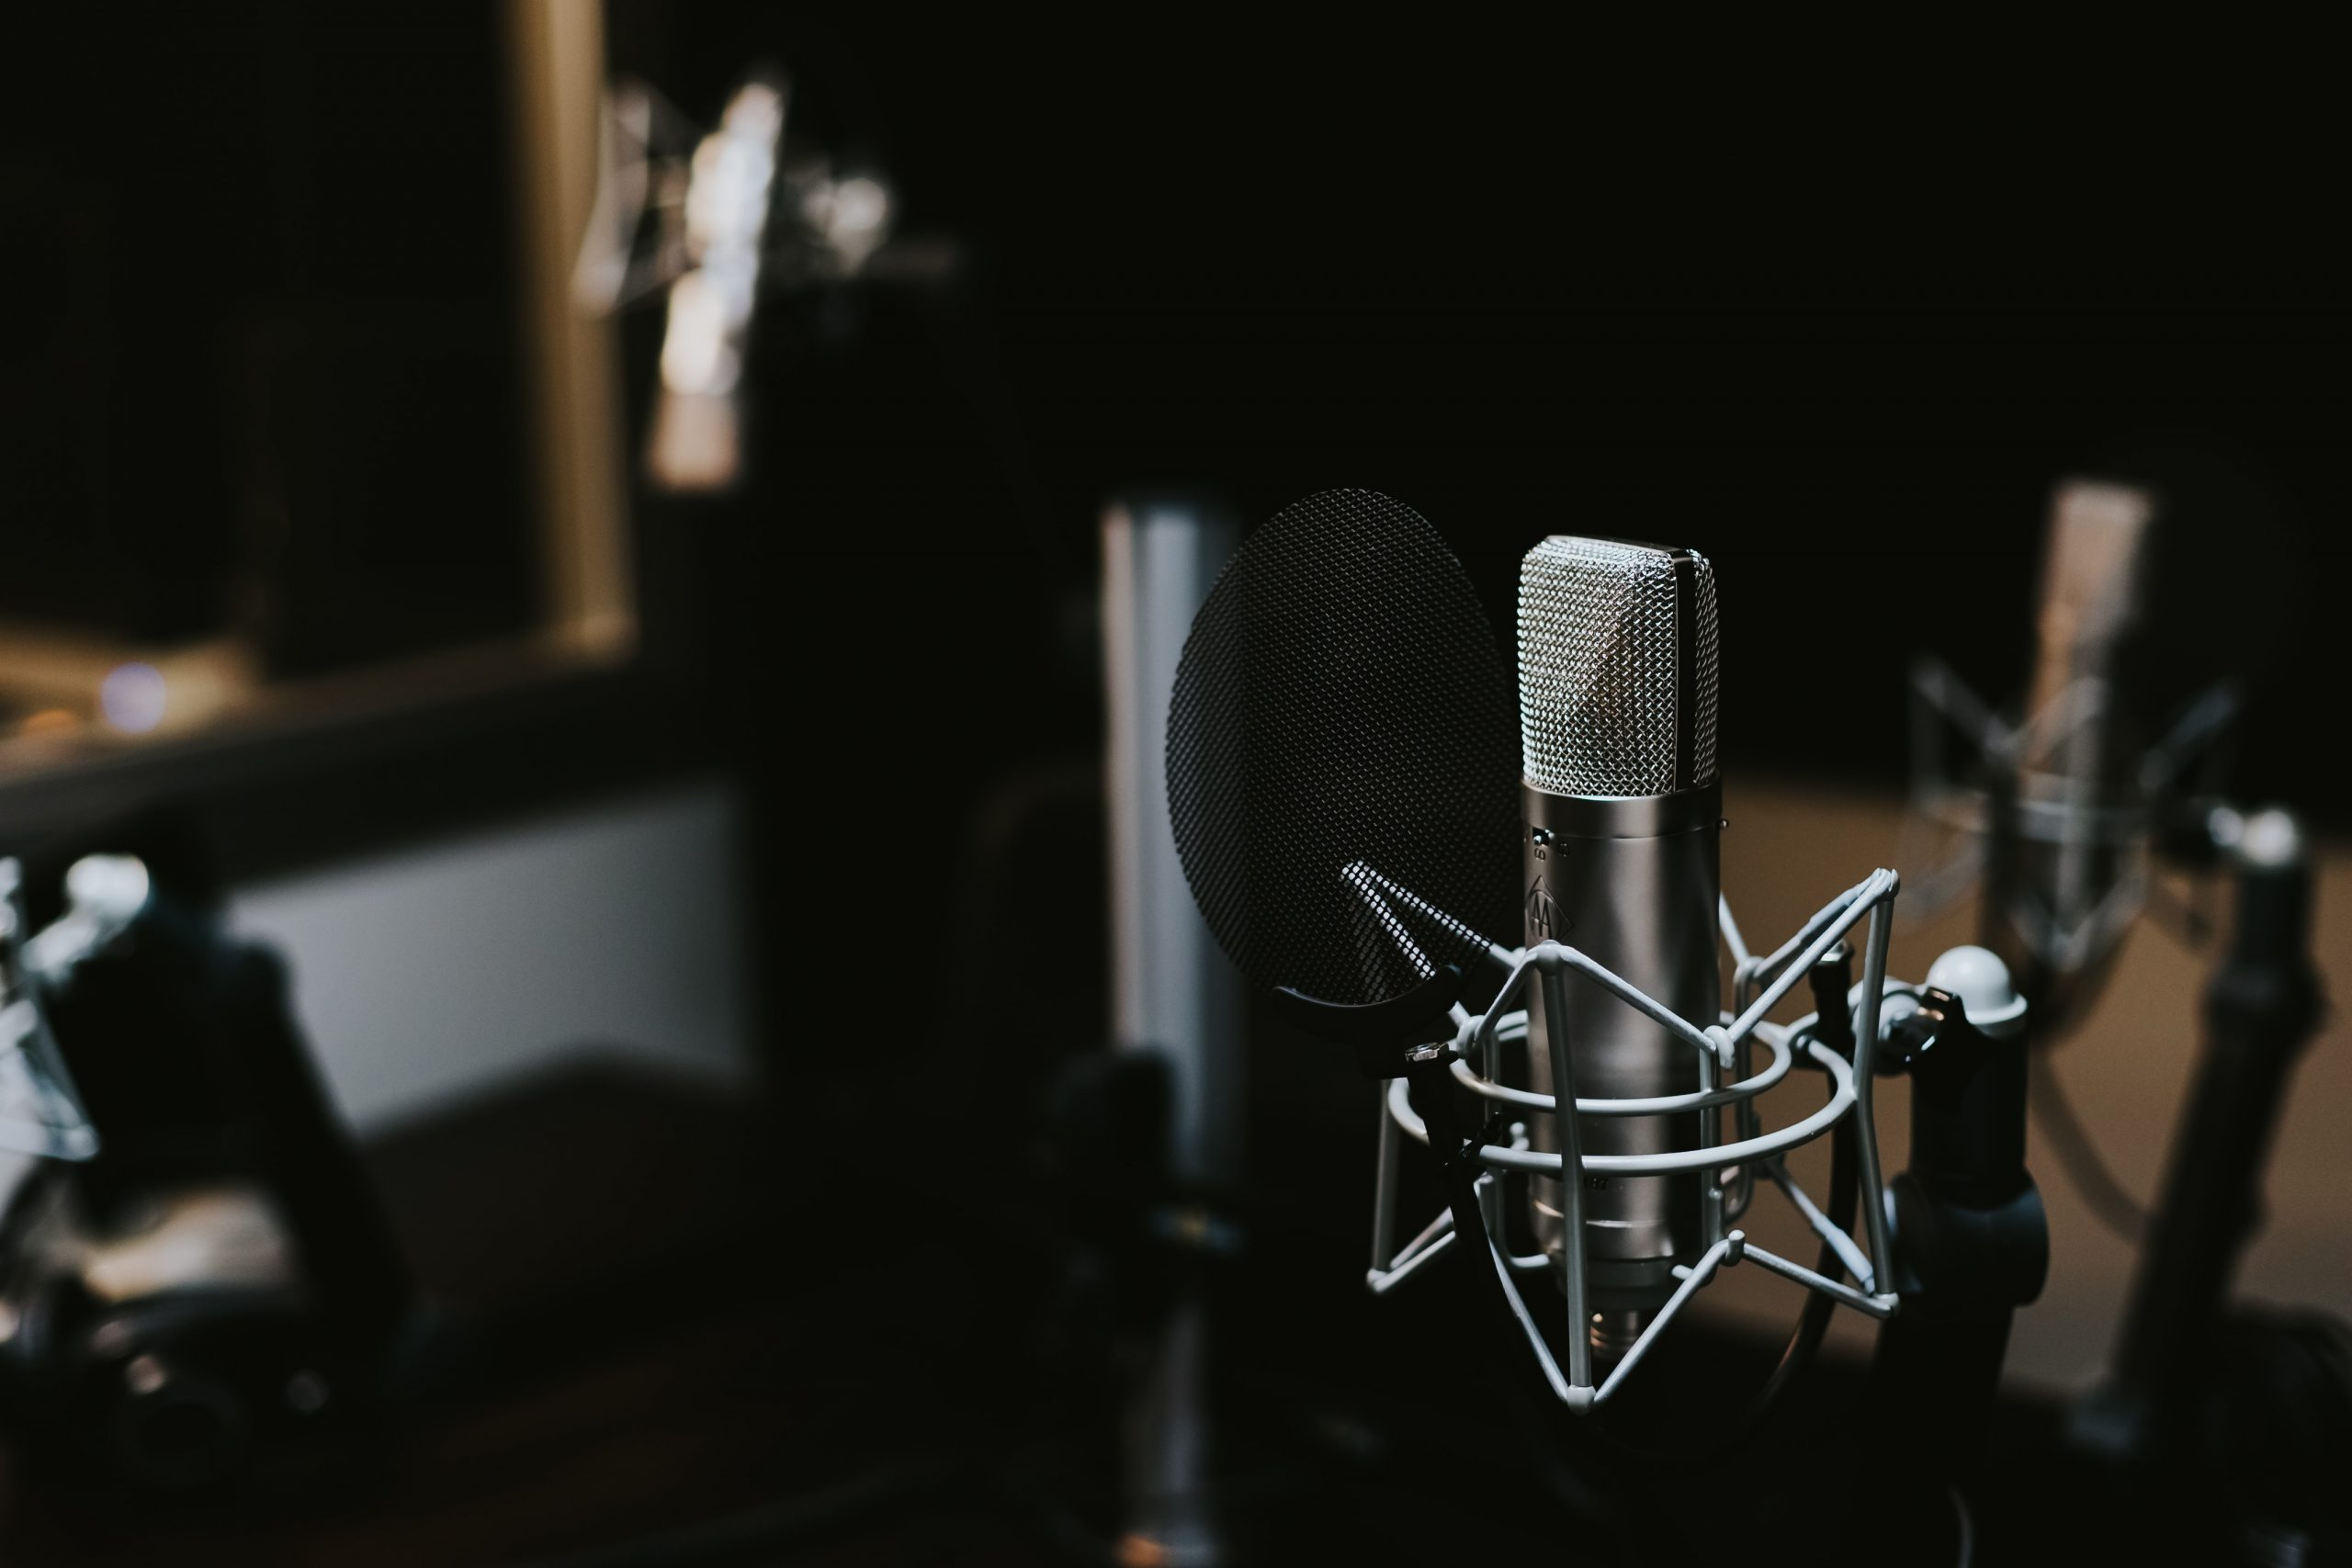 Partnership in Local Radio, Moving the Industry Forward